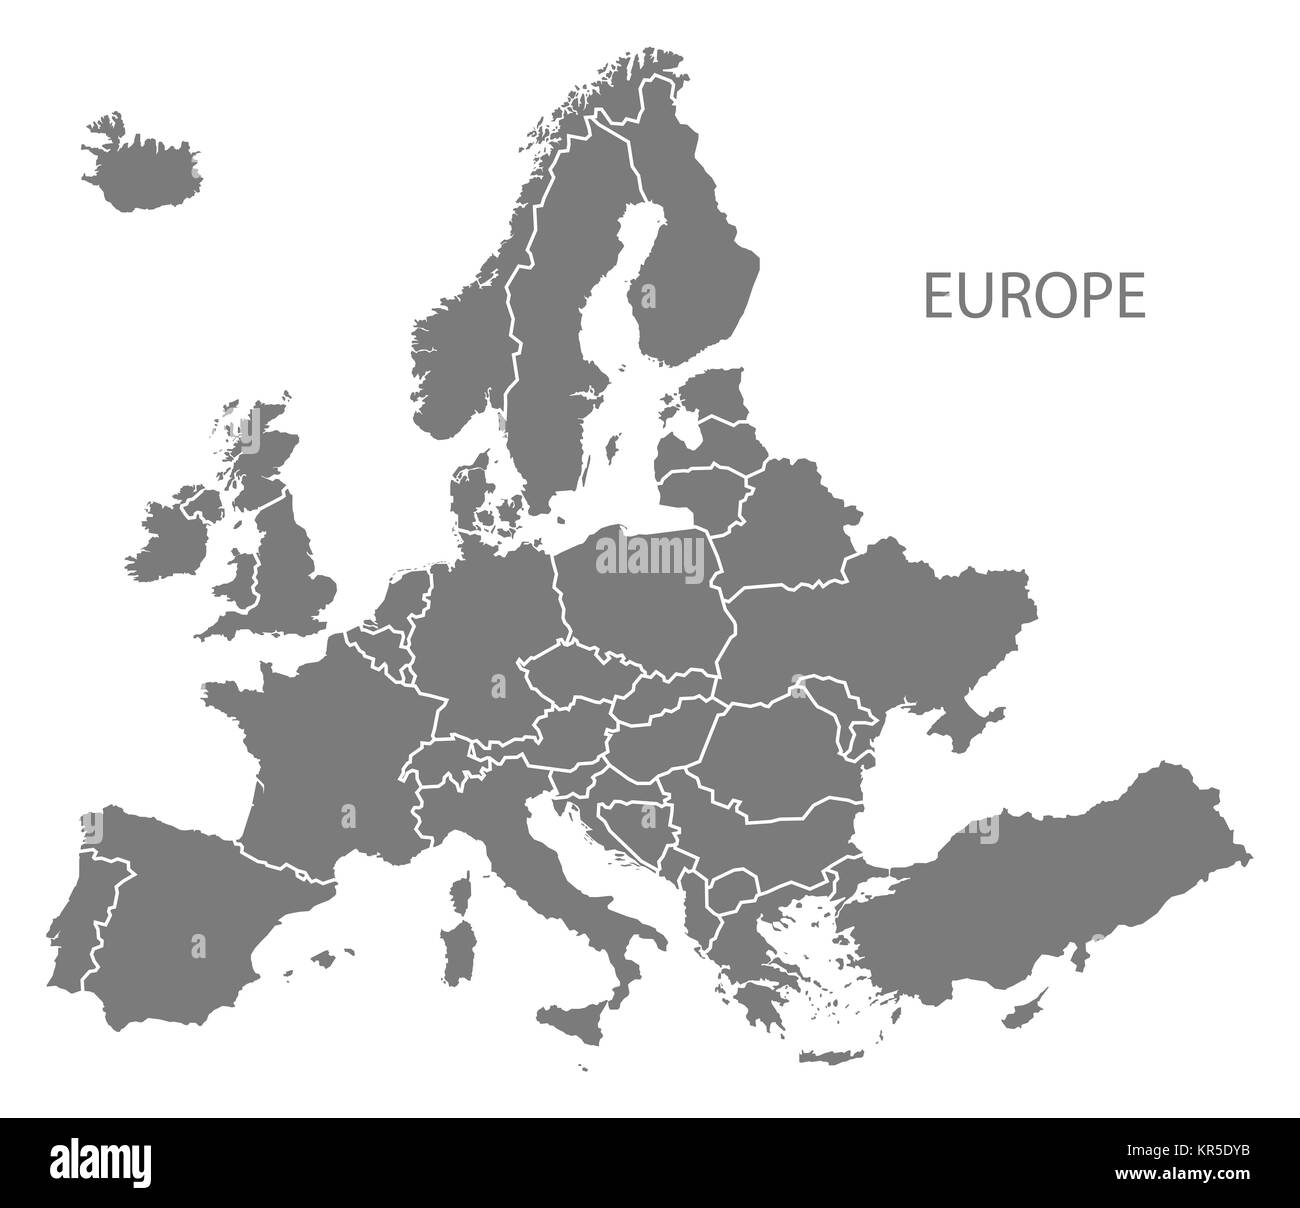 Europe Map Black White.Europe Map Countries Black And White Stock Photos Images Alamy